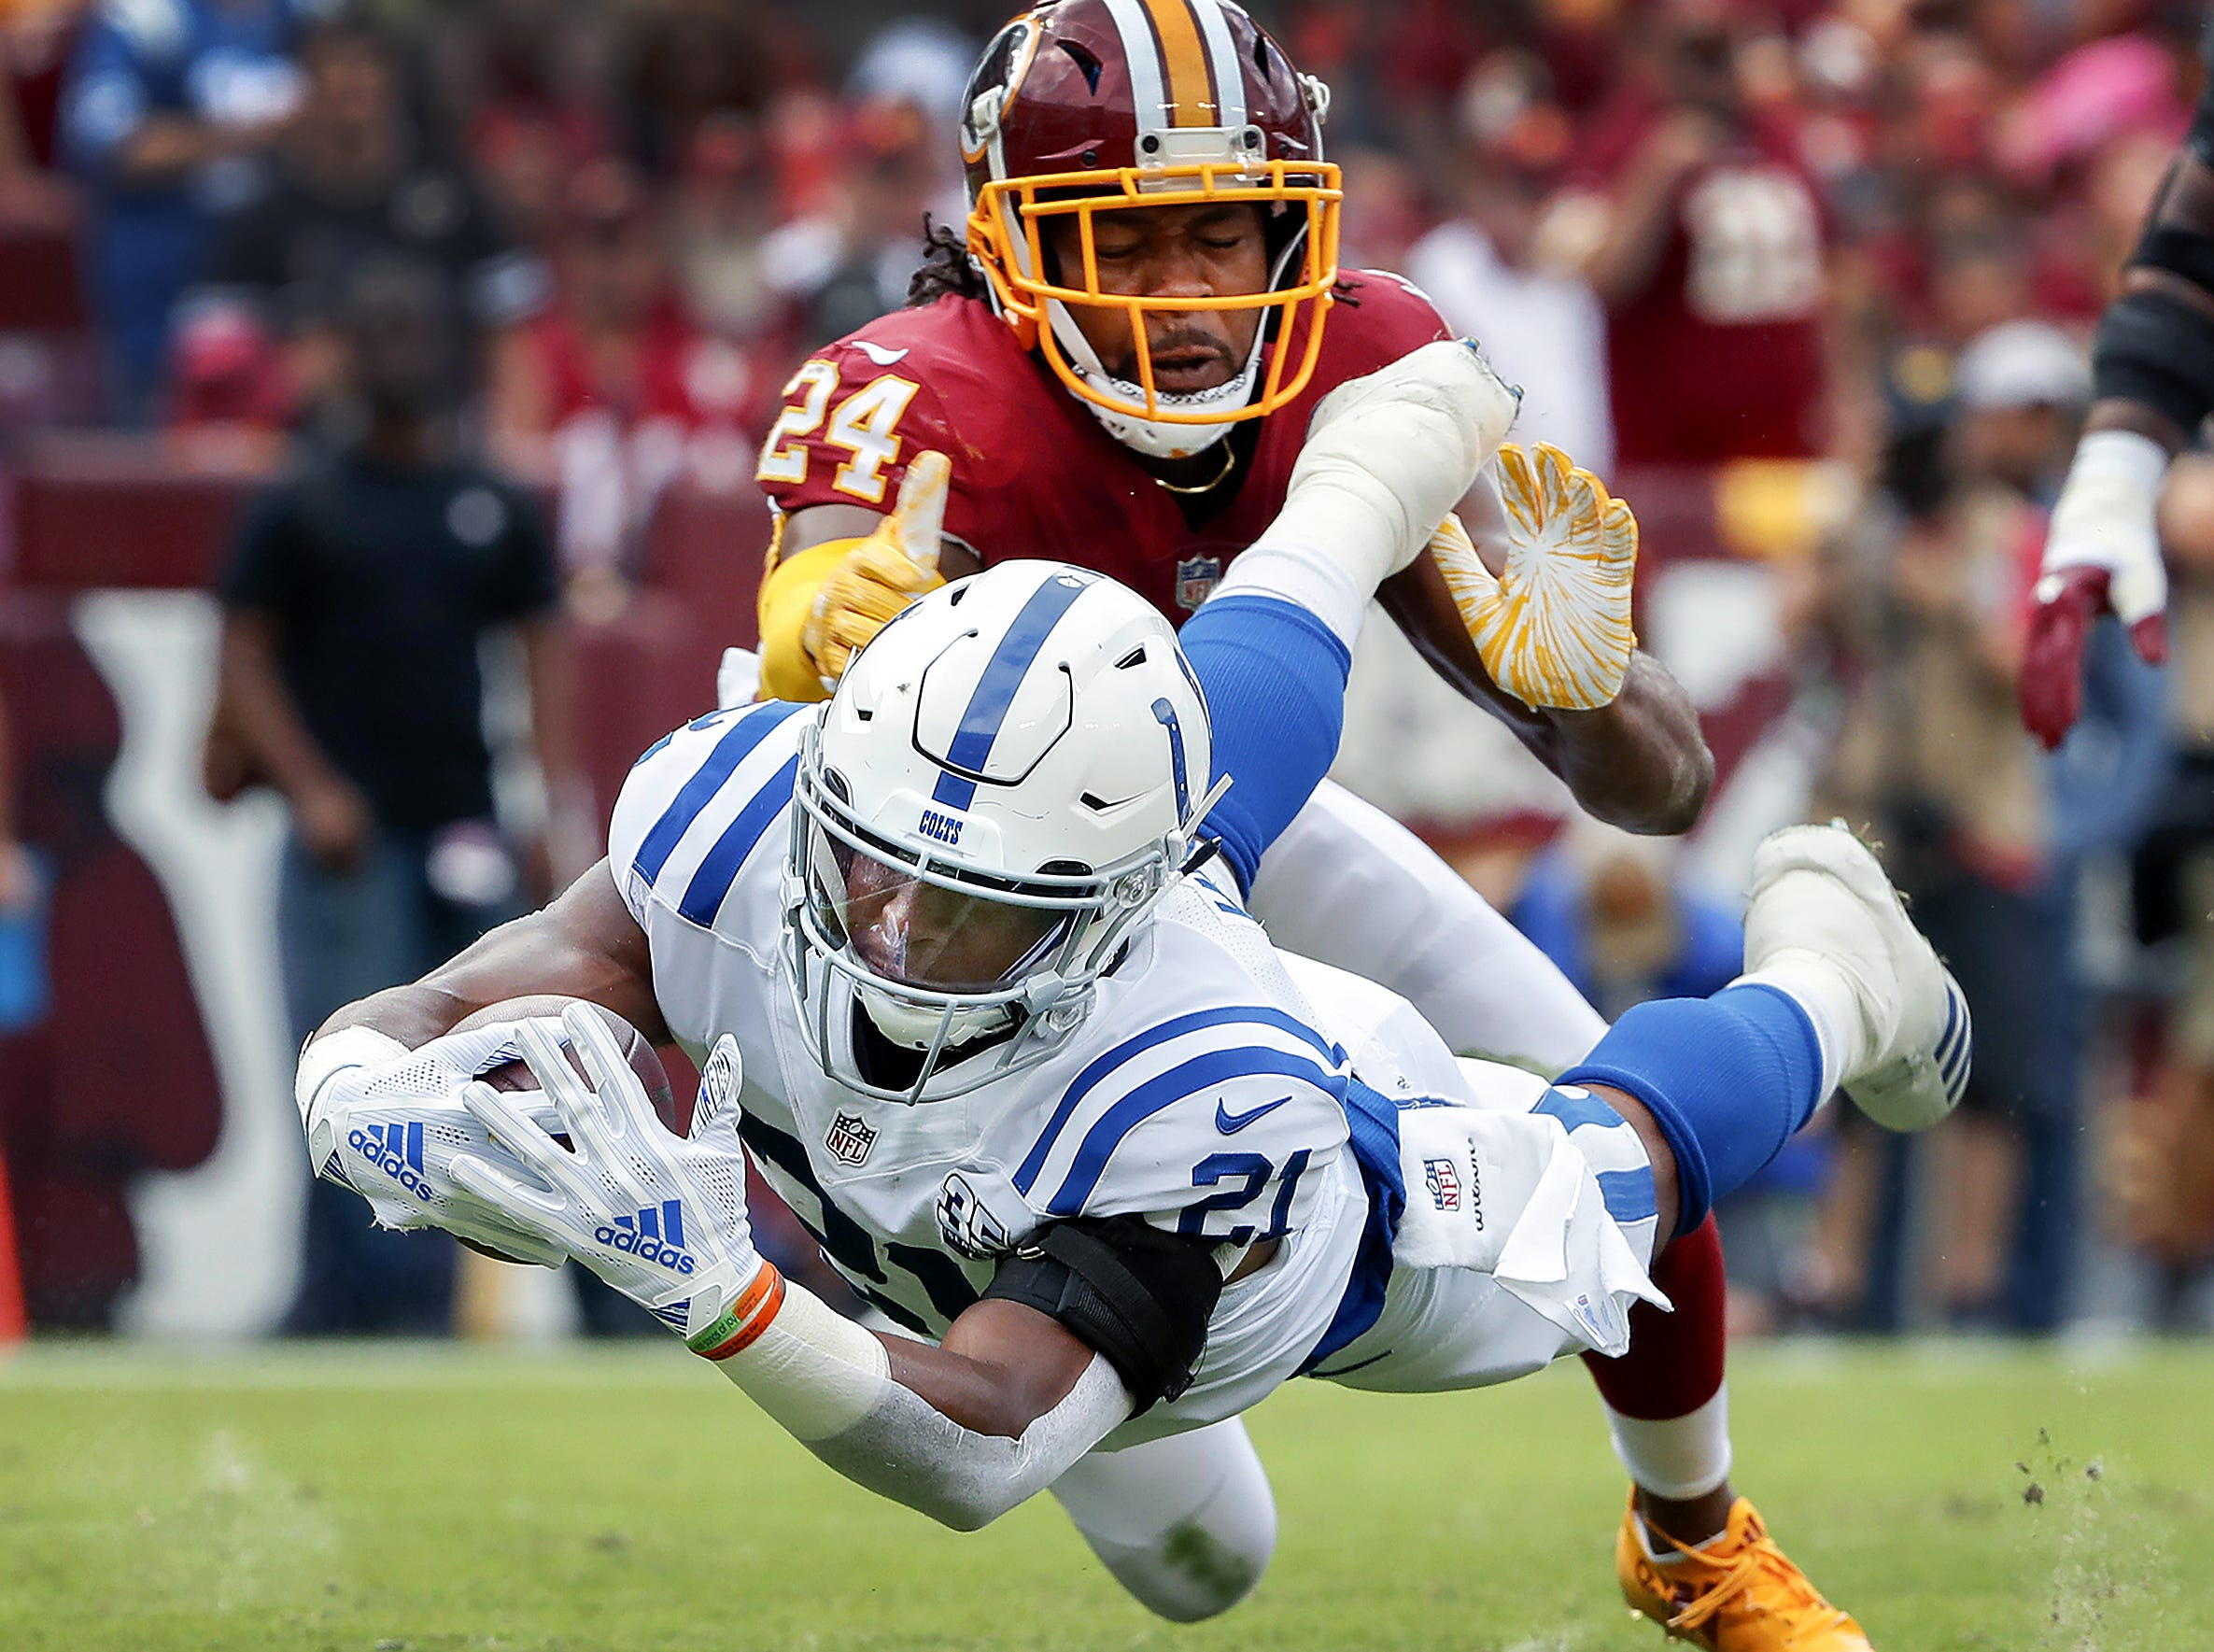 Indianapolis Colts running back Nyheim Hines (21) dives into the end zone to score his first career NFL touchdown during the first half of action. The Indianapolis Colts play the Washington Redskins at FedEx Field in Landover, MD., Sunday, Sept. 16, 2018.